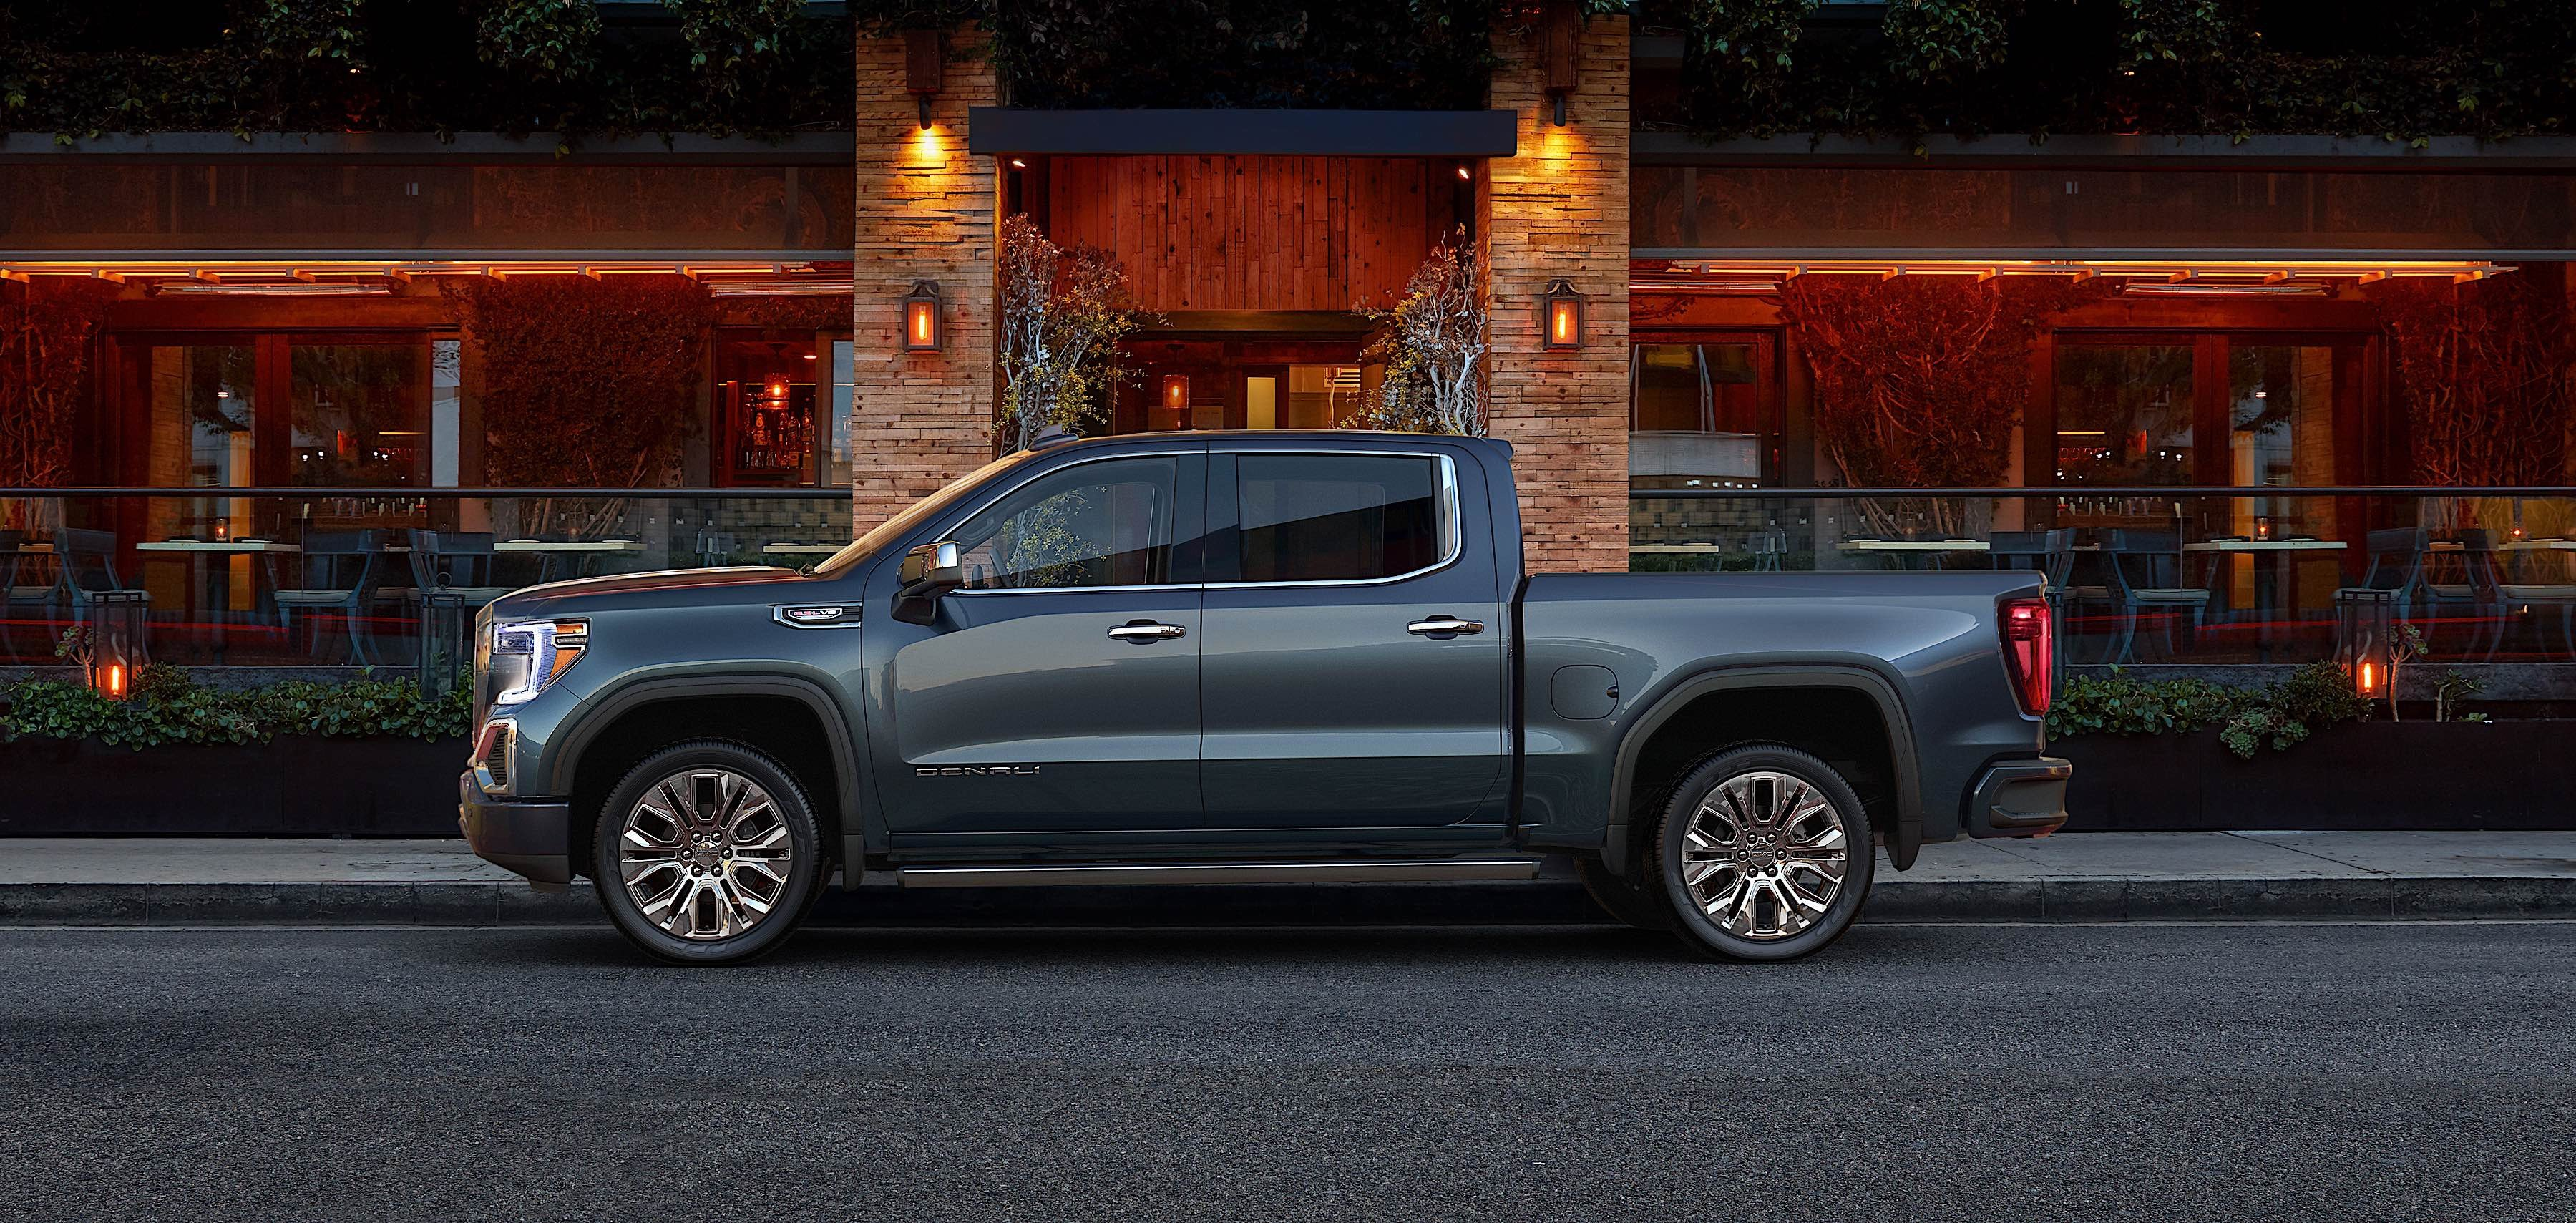 box pickup styles bed with truck and white clipping sierra configurations understanding gmc path motors general on isolated background